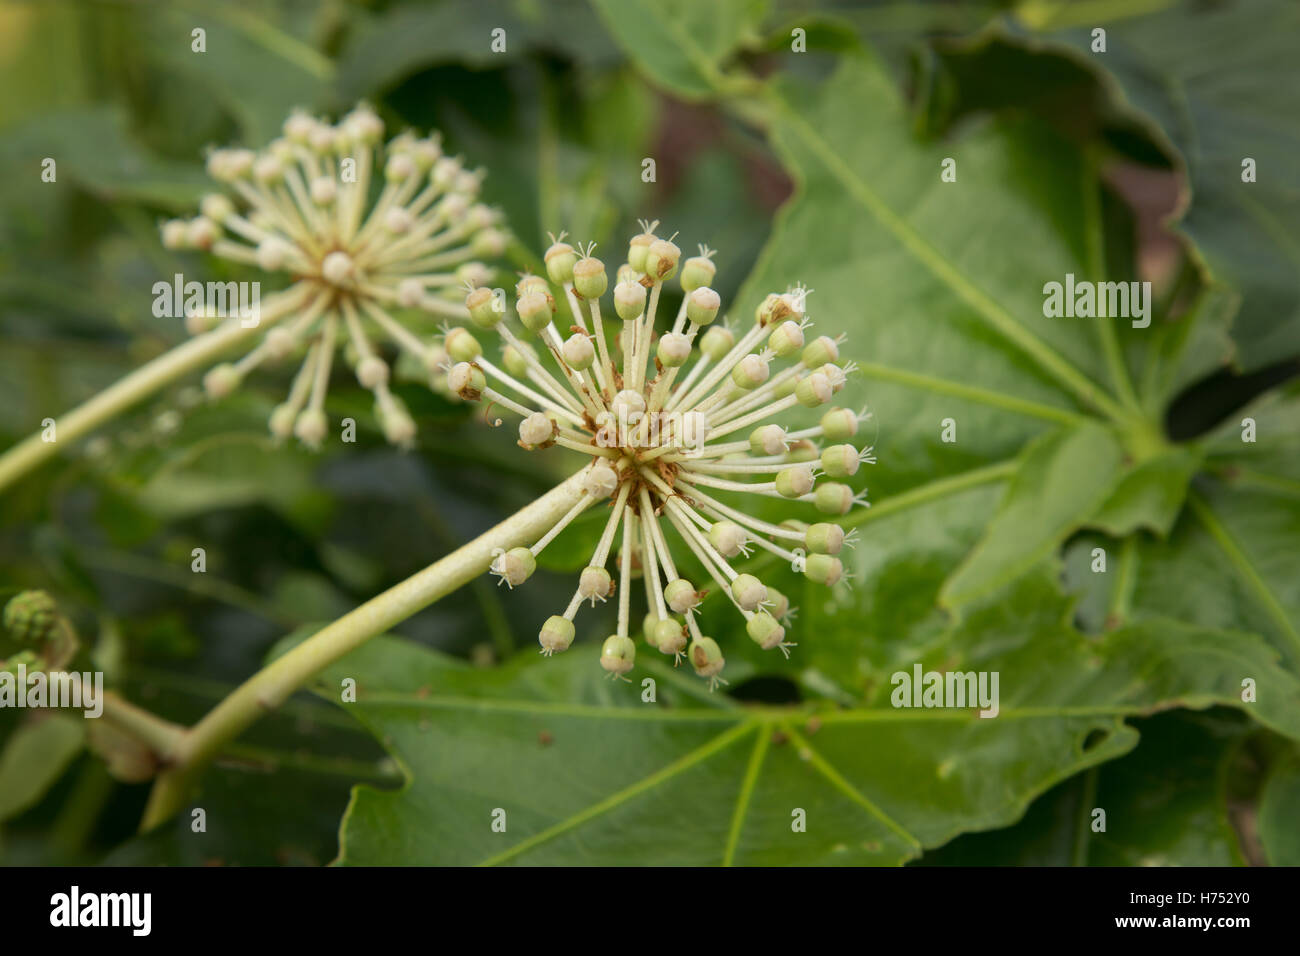 Fatsia Japonica in flower - an evergreen shrub in the Araliaceae family, also known as the paperplant, or fig leaved - Stock Image